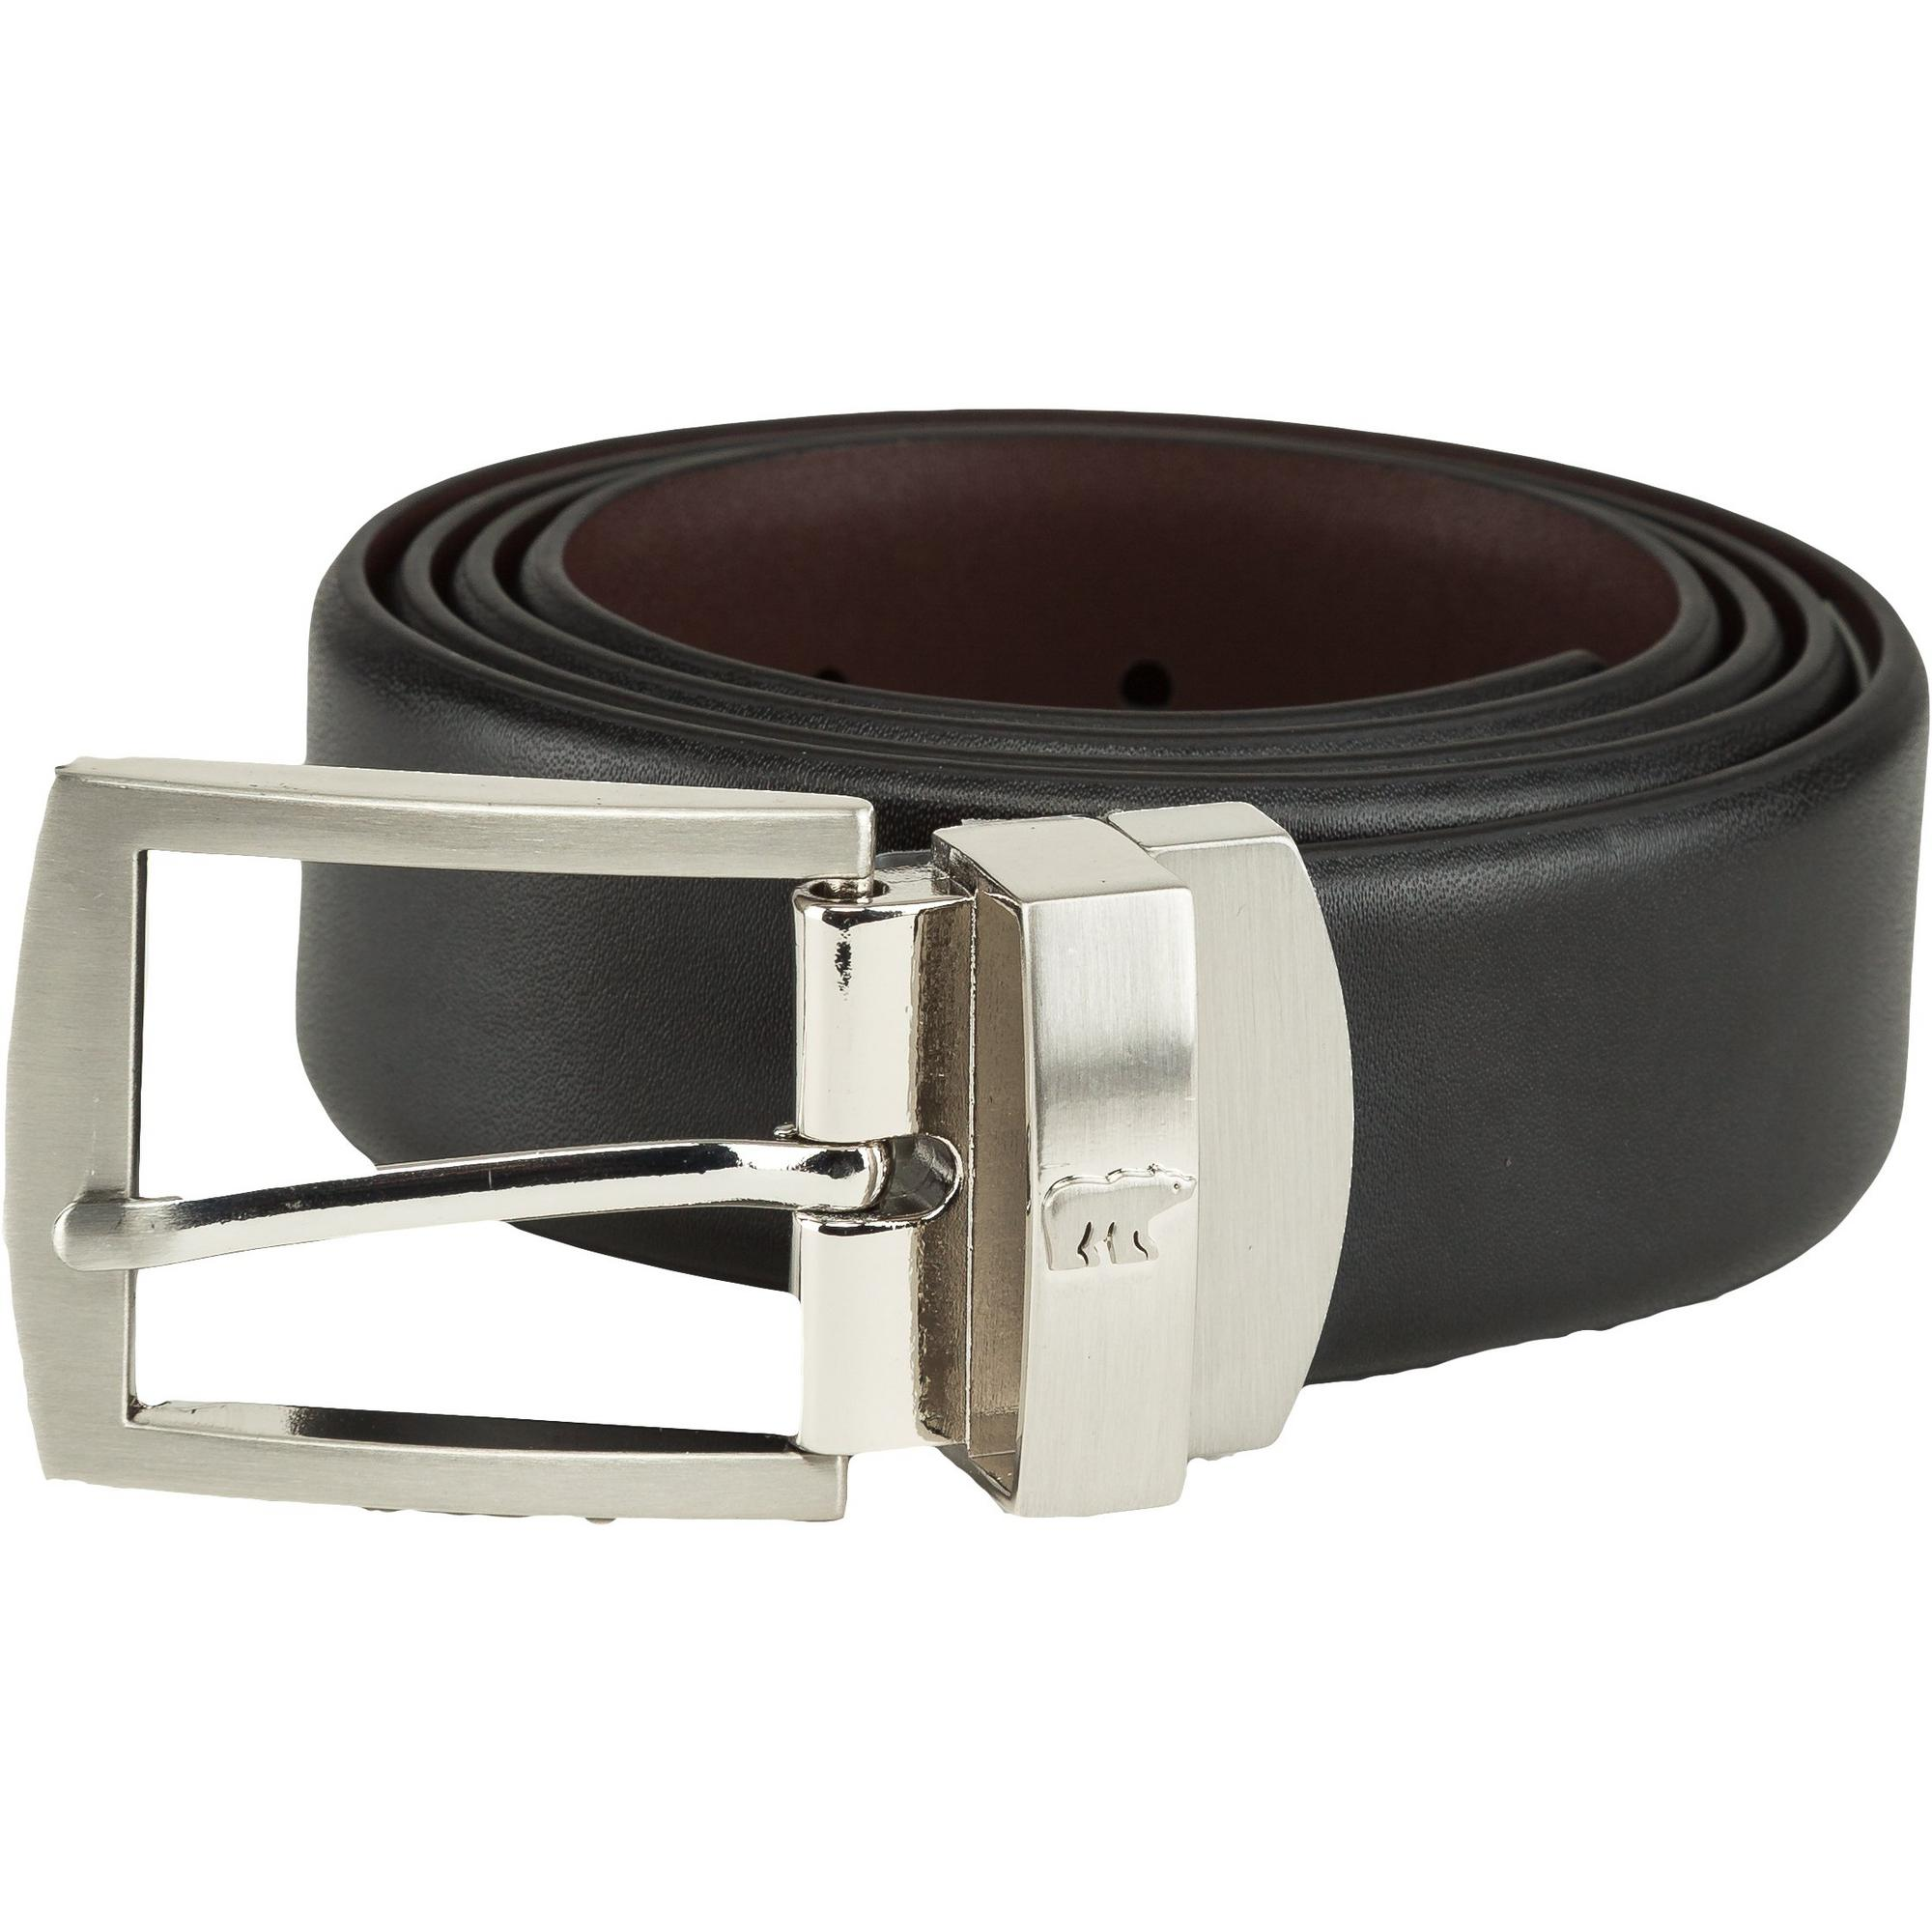 Men's Reversible Leather Belt with Prong